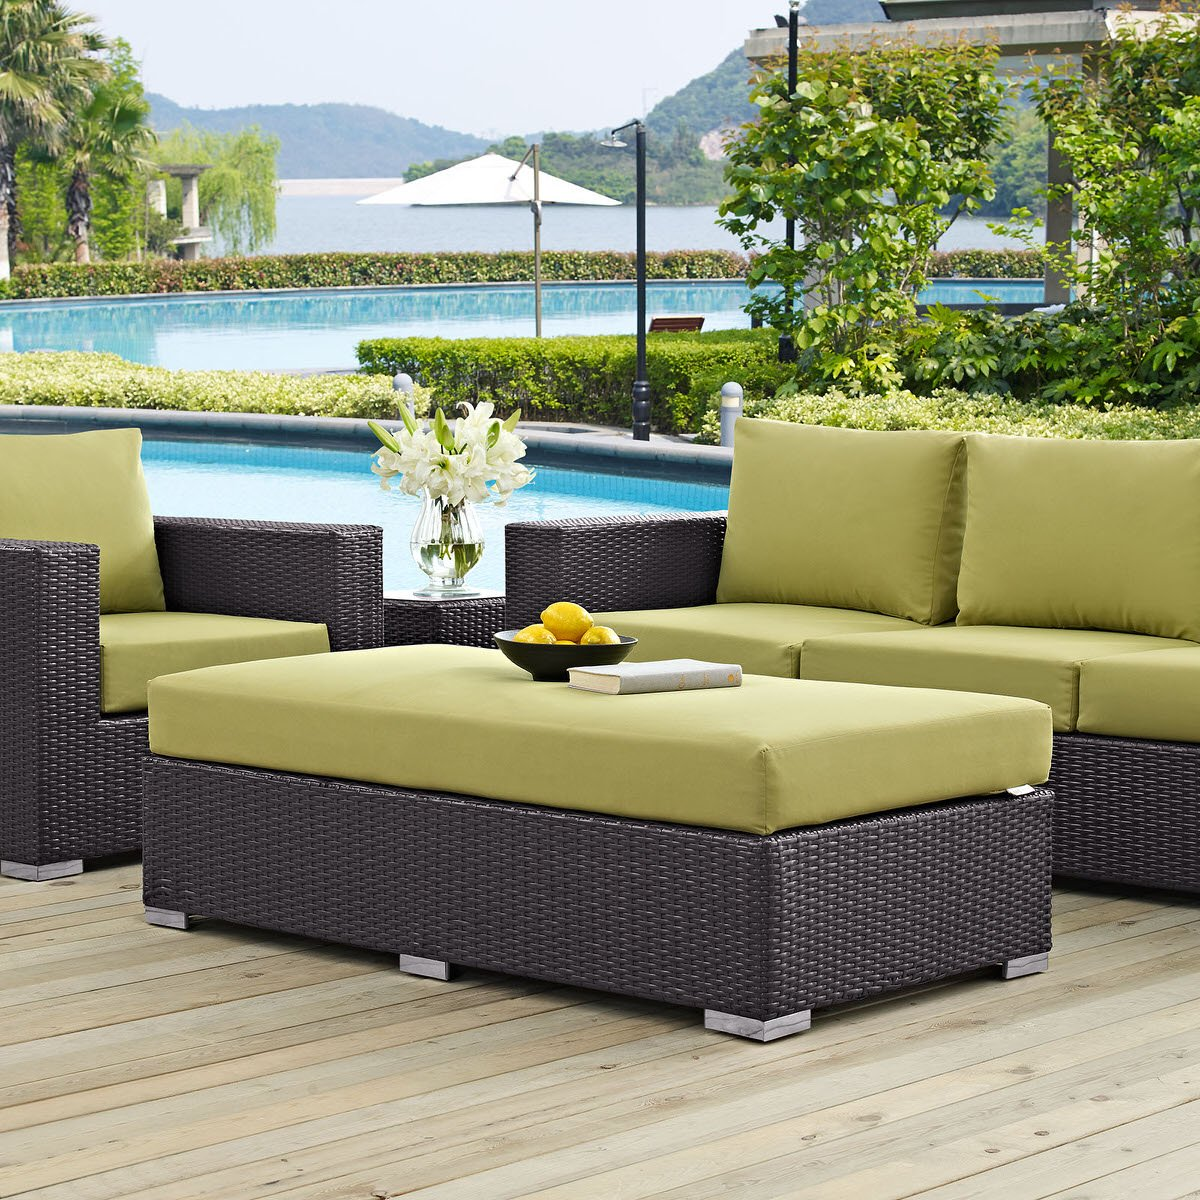 Convene Outdoor Patio Fabric Rectangle Ottoman Espresso Peridot By Modern  Living